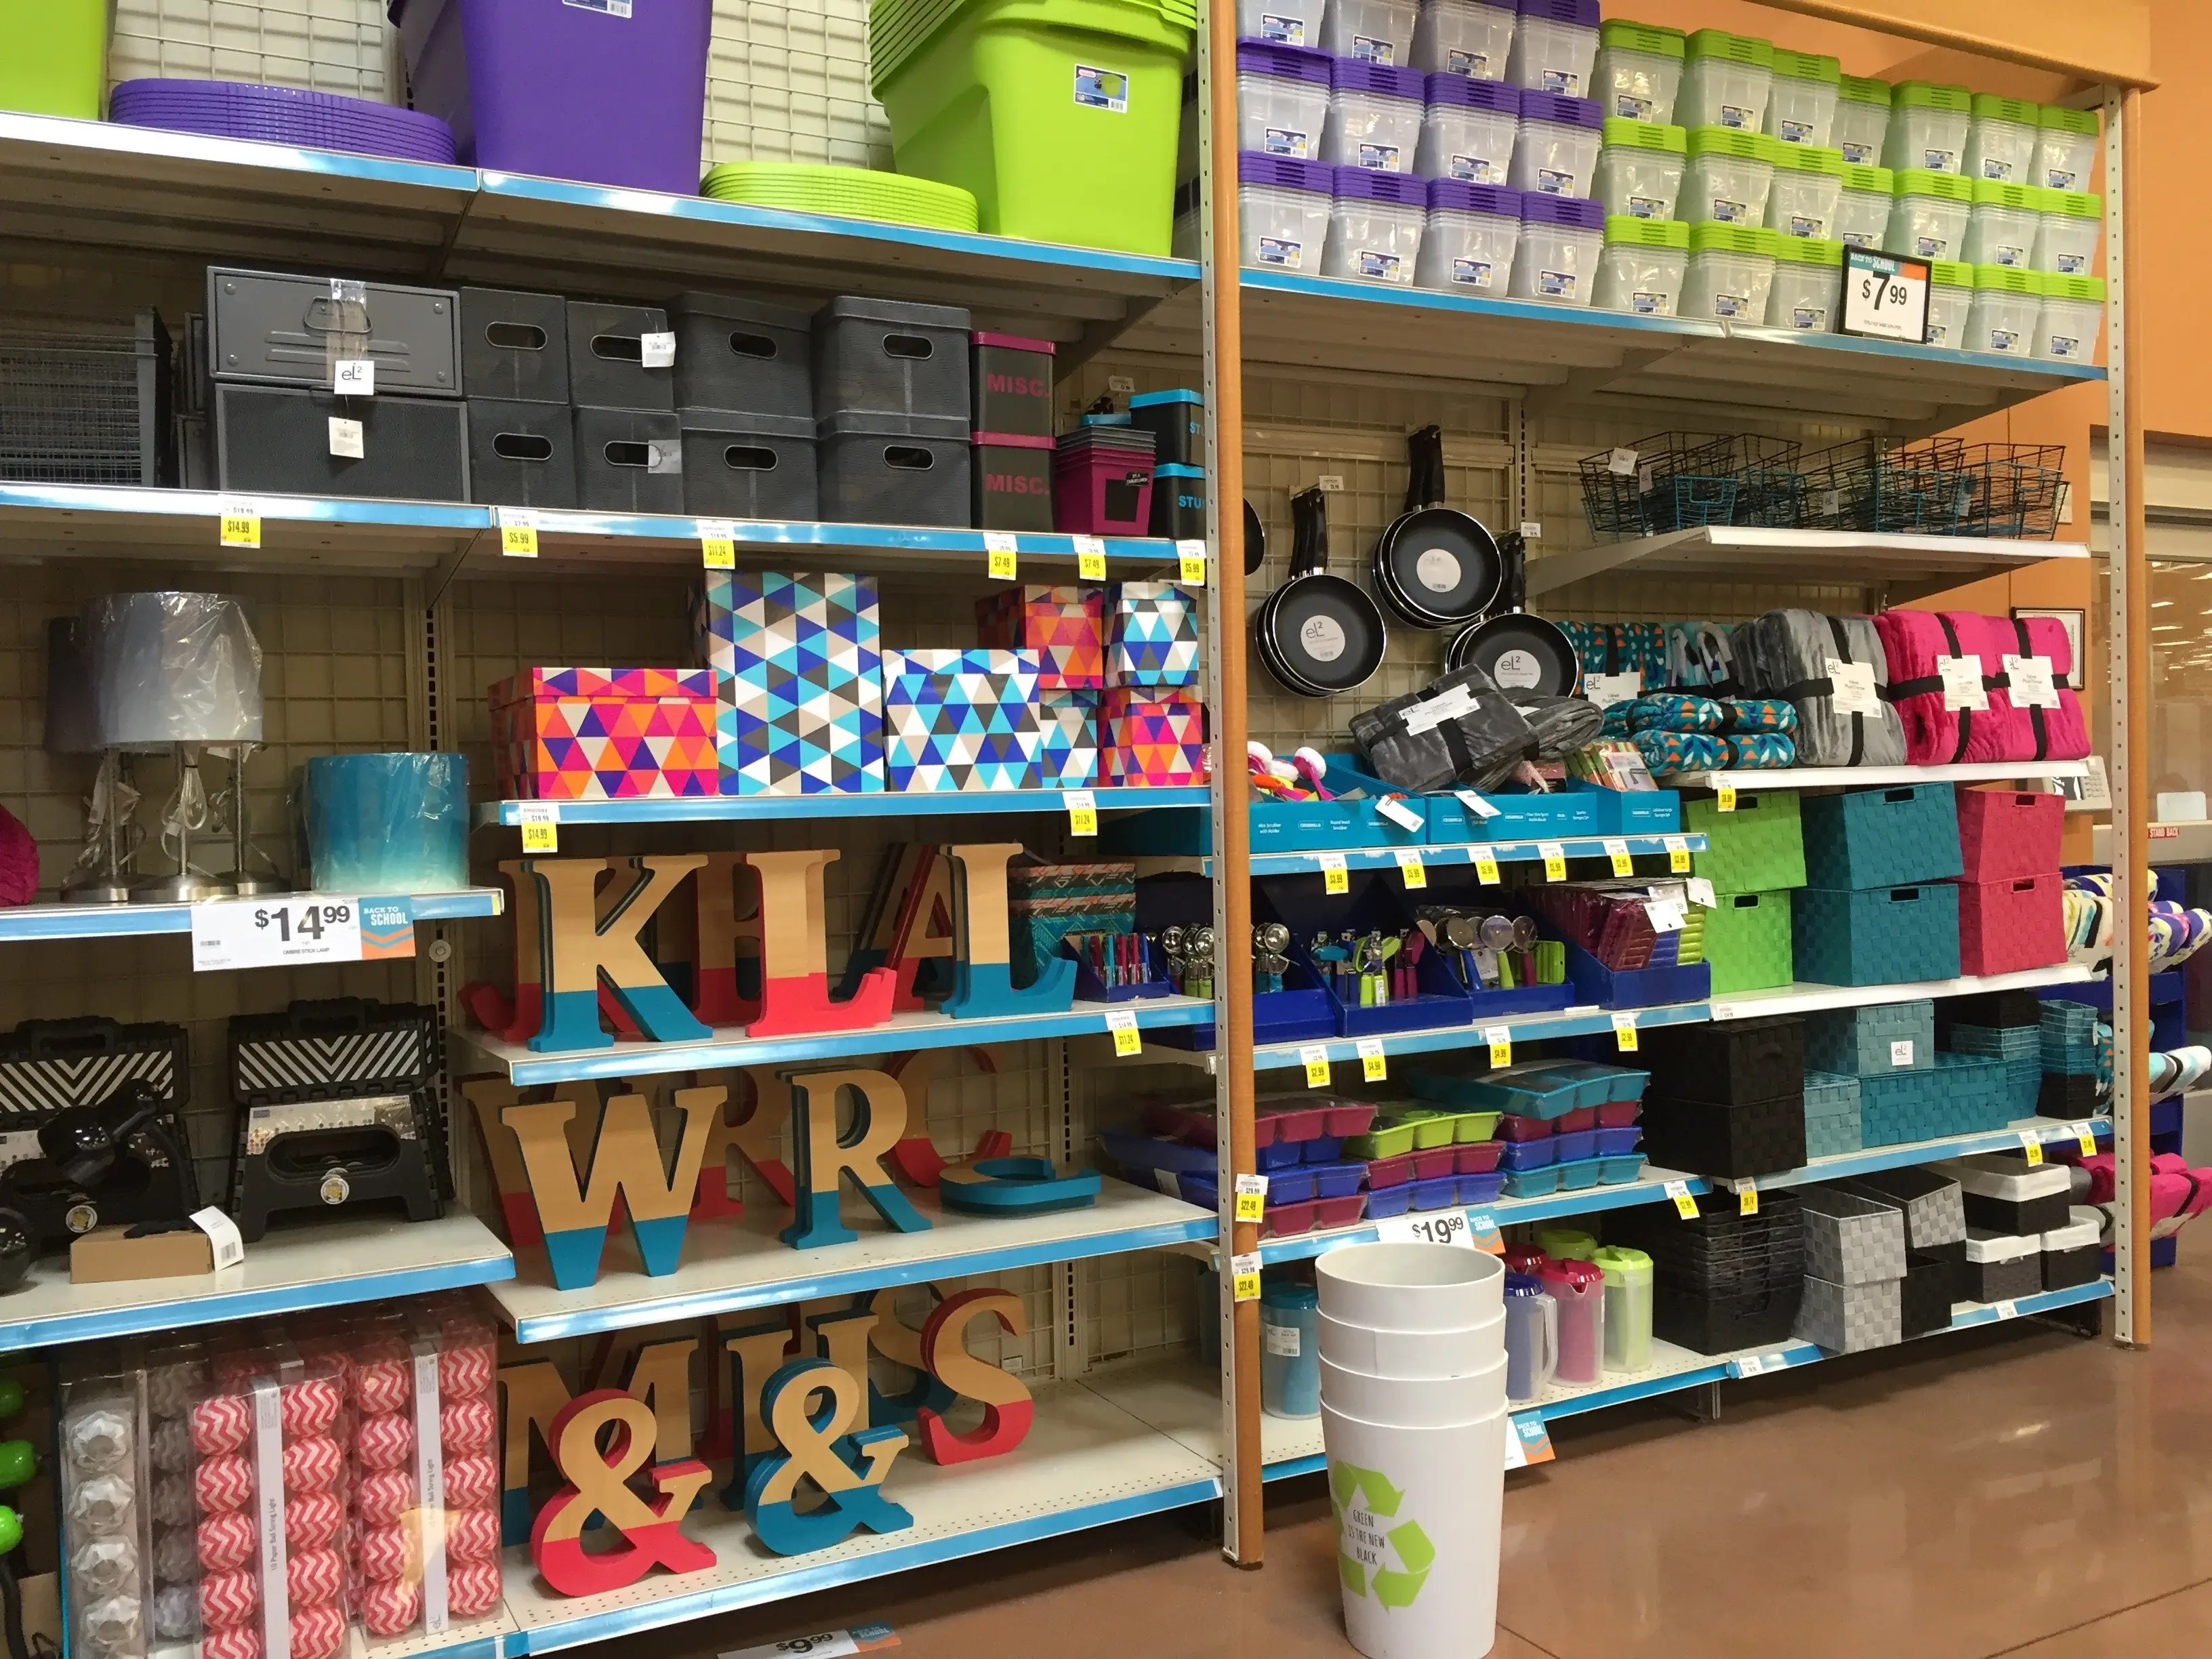 A few aisles are stocked with college-dorm decorations.